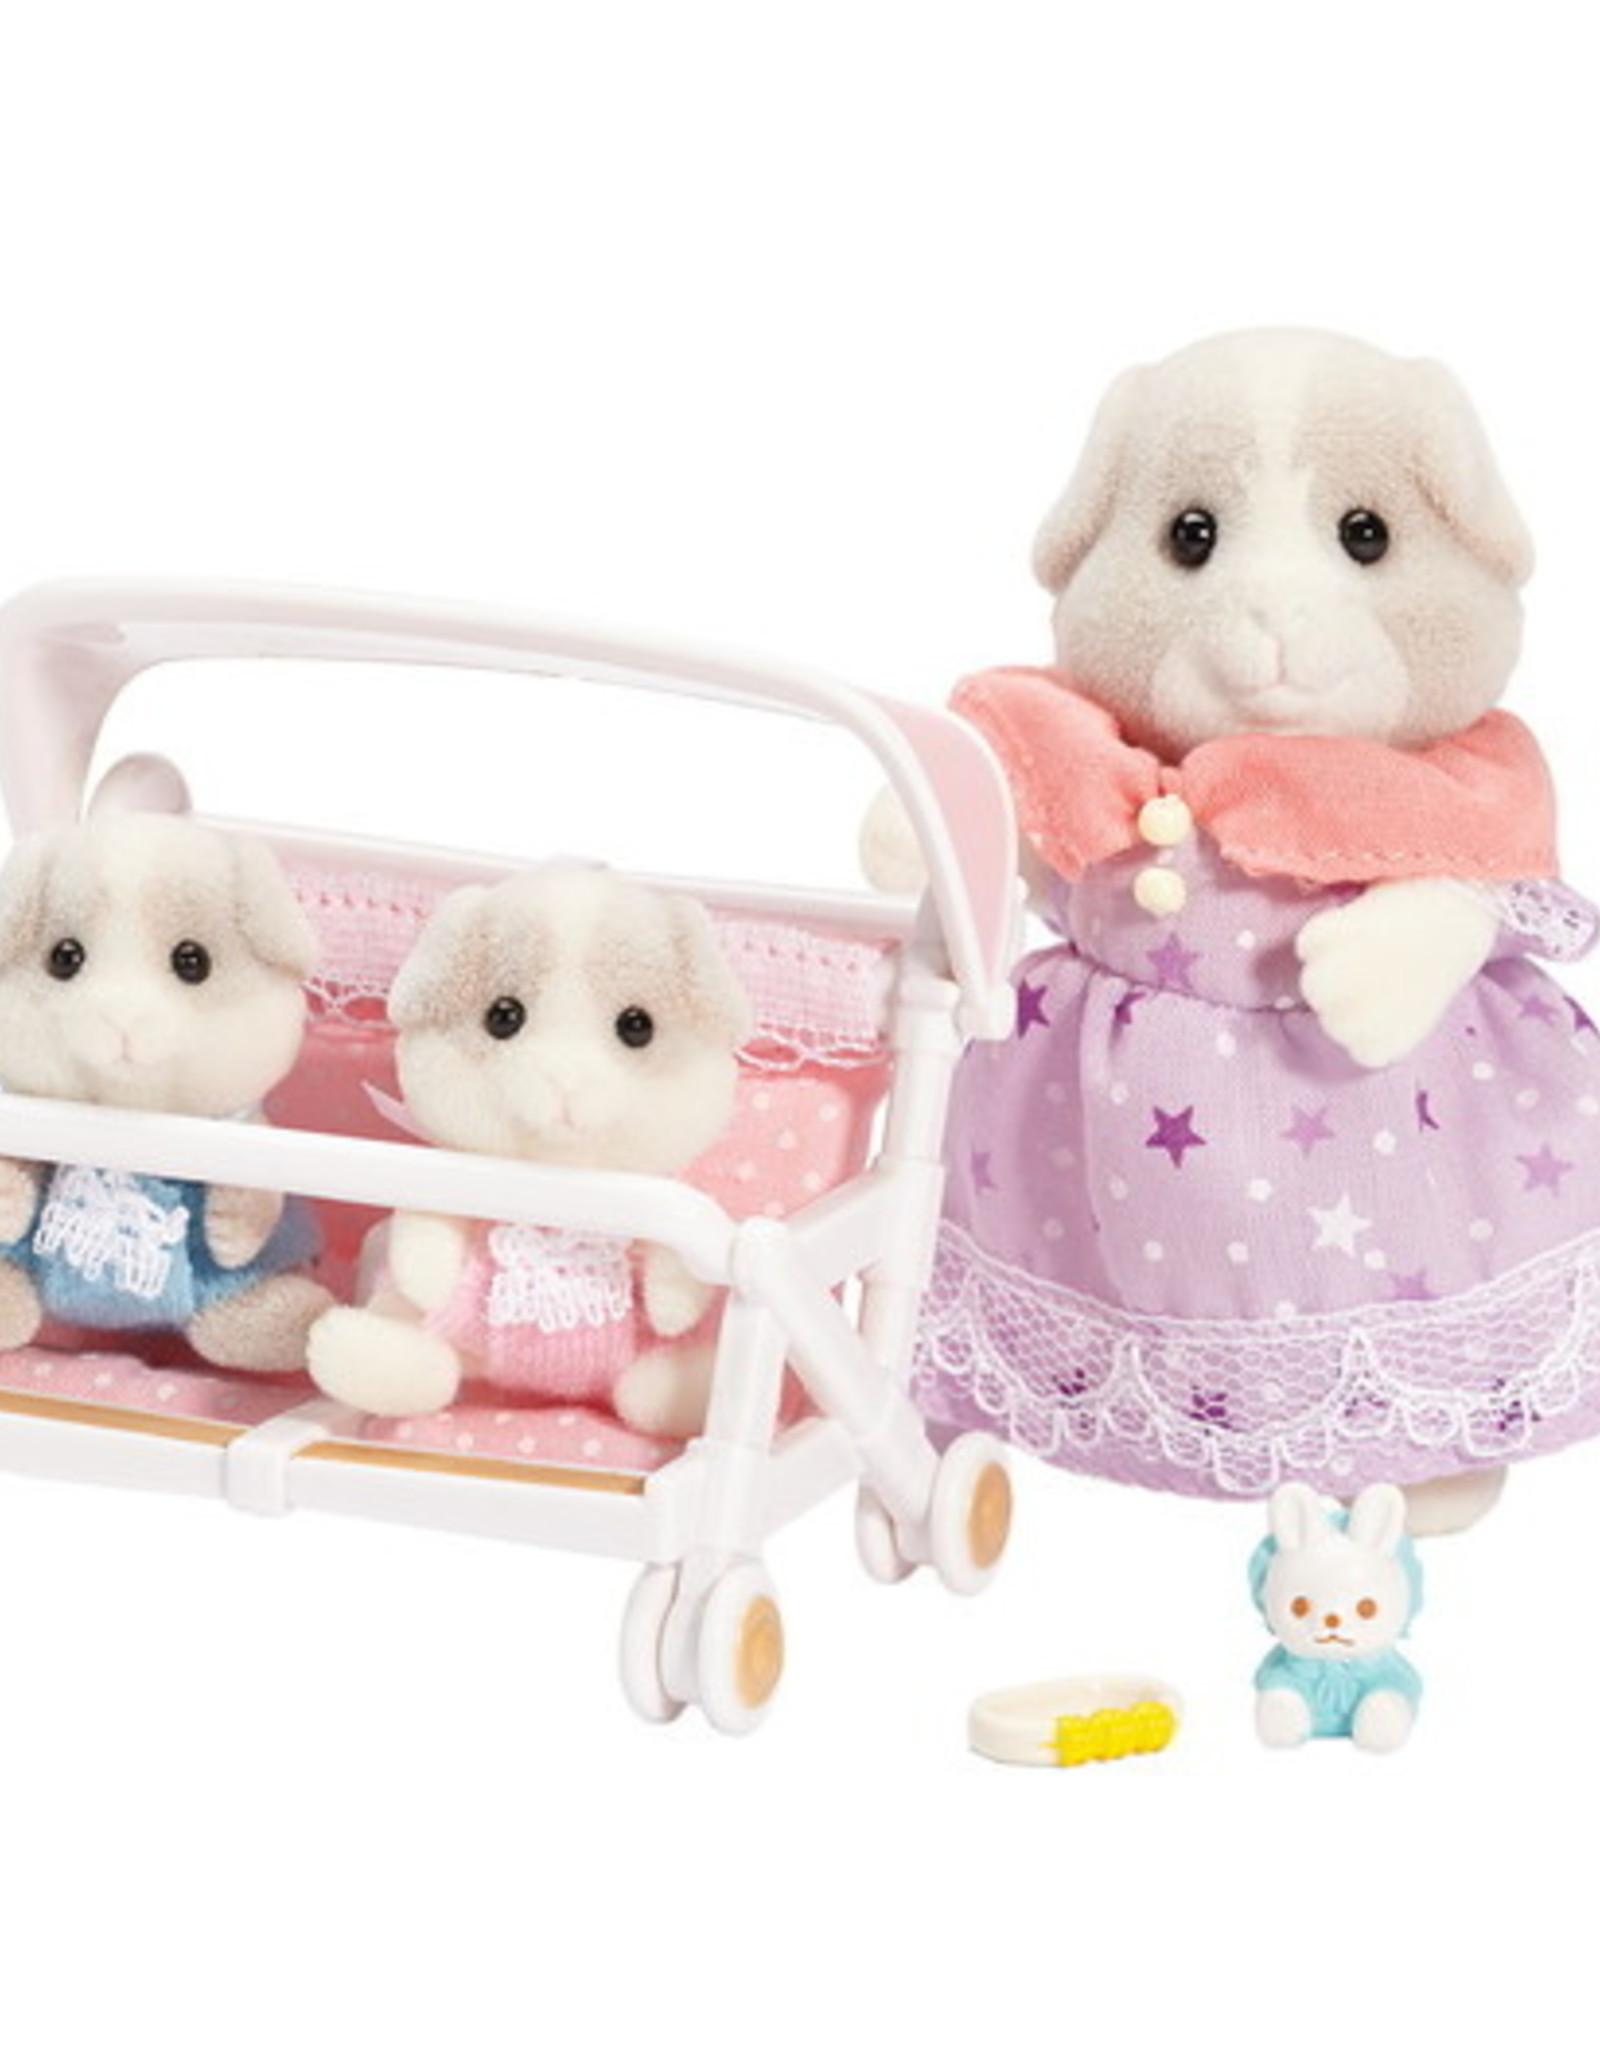 Calico Critters CC Patty & Paden's Double Stroller Set